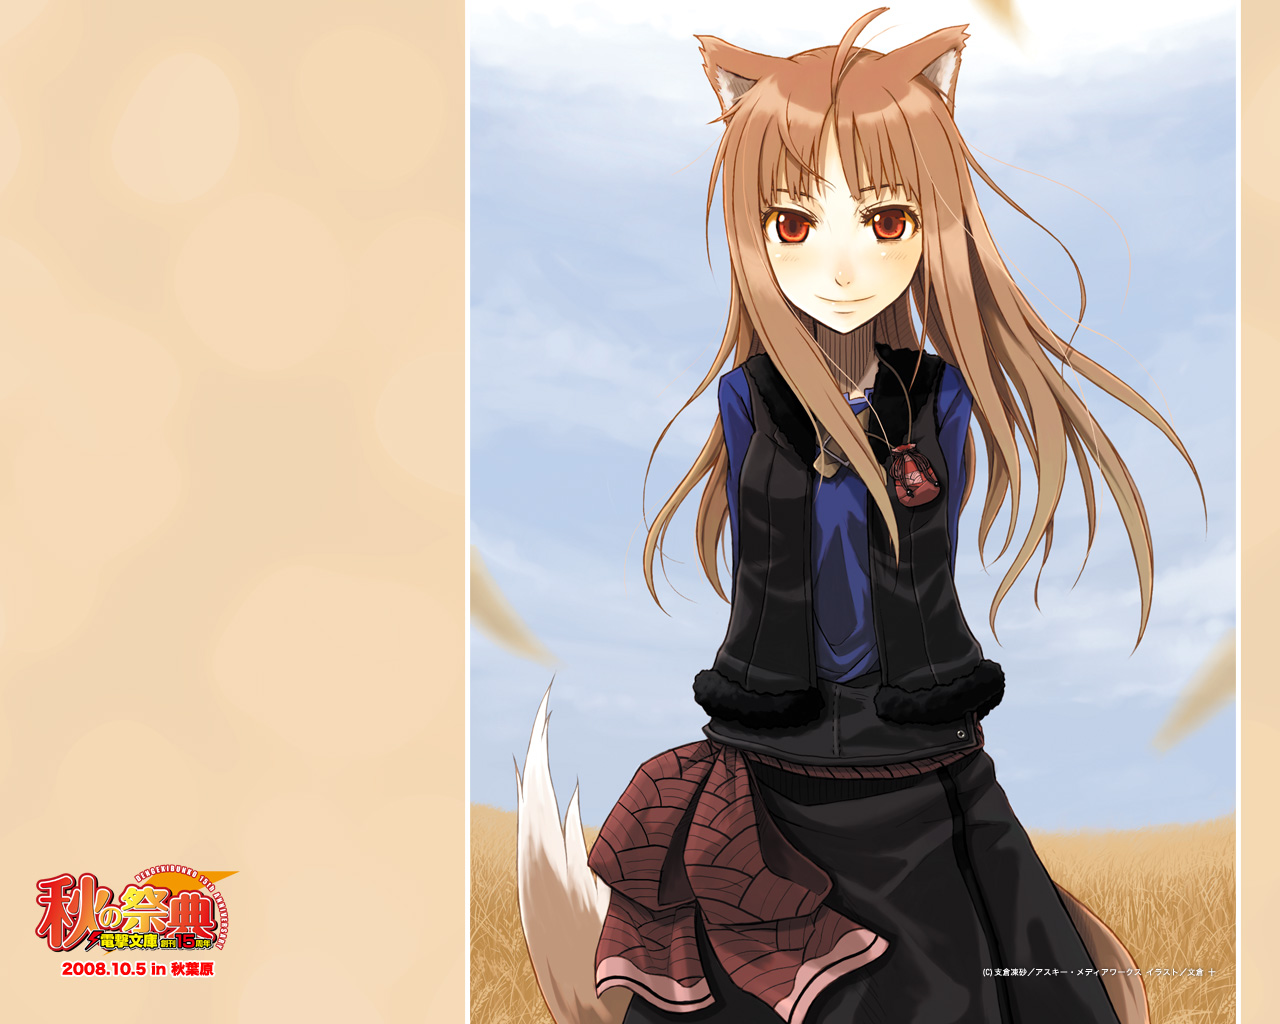 animal_ears brown_hair clouds horo long_hair ookami_to_koushinryou red_eyes sky tail wolfgirl